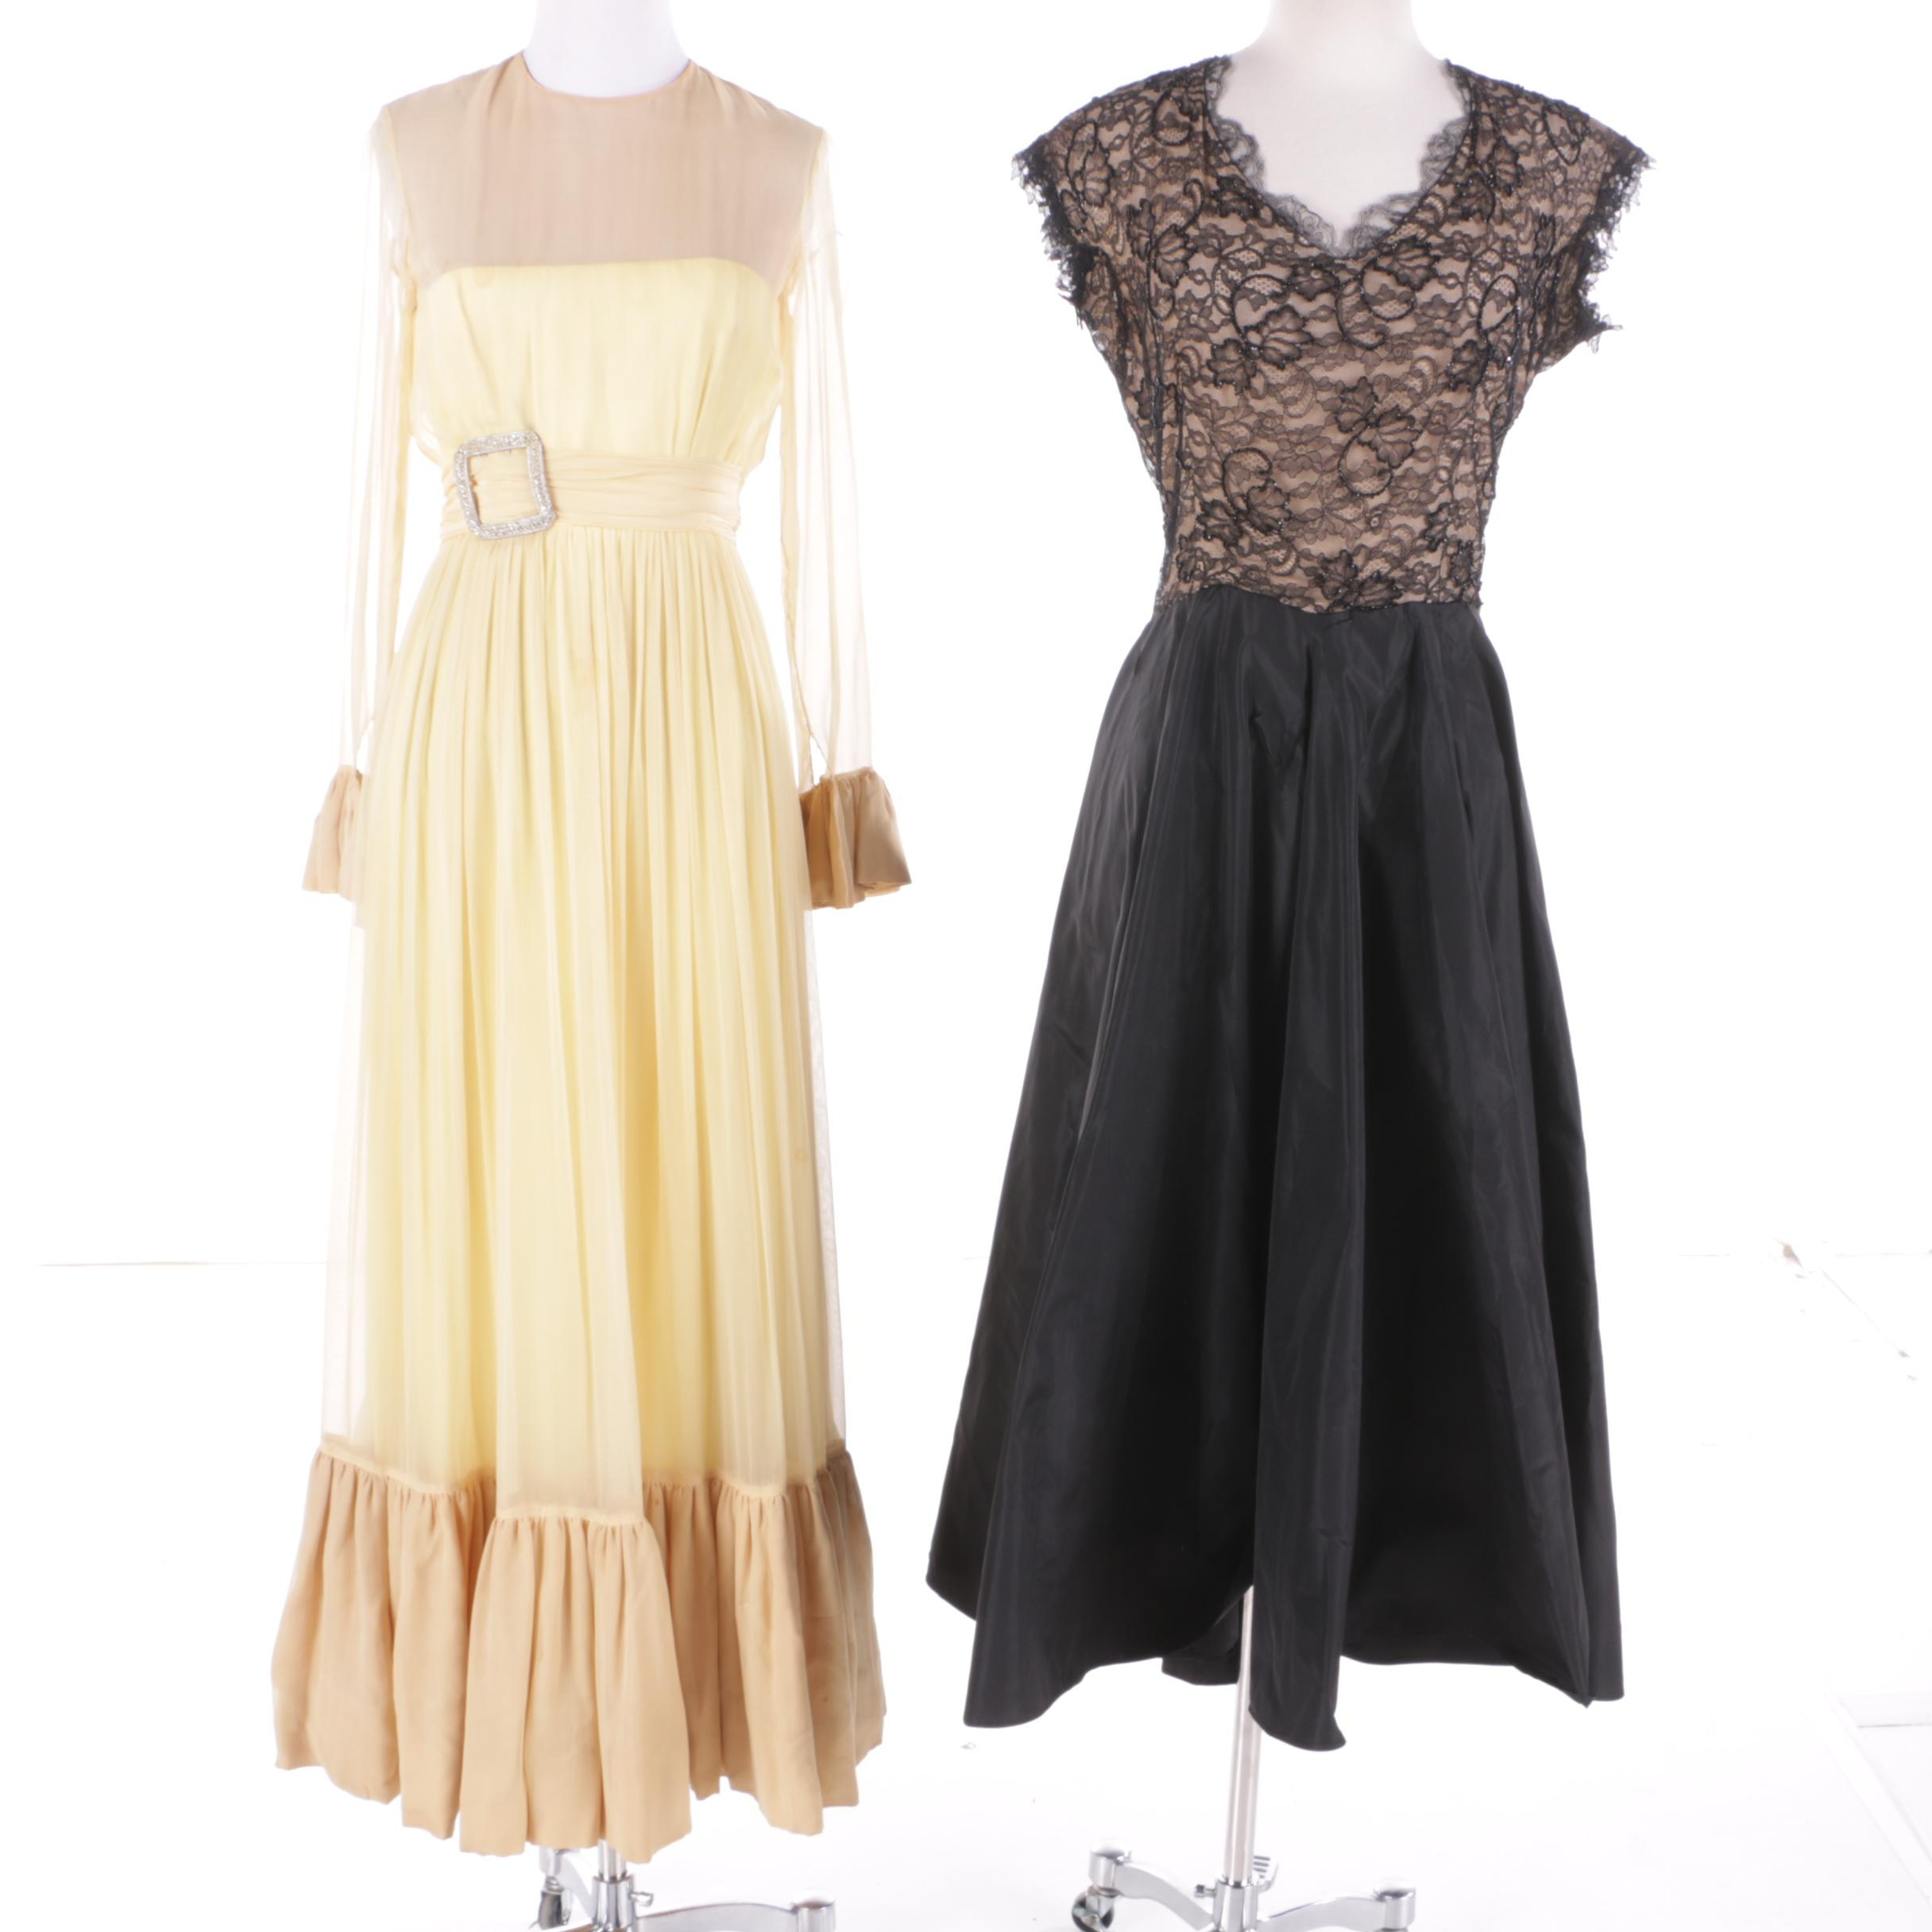 1950s & 1960s Lace, Beading, Chiffon, and Rhinestone Dresses